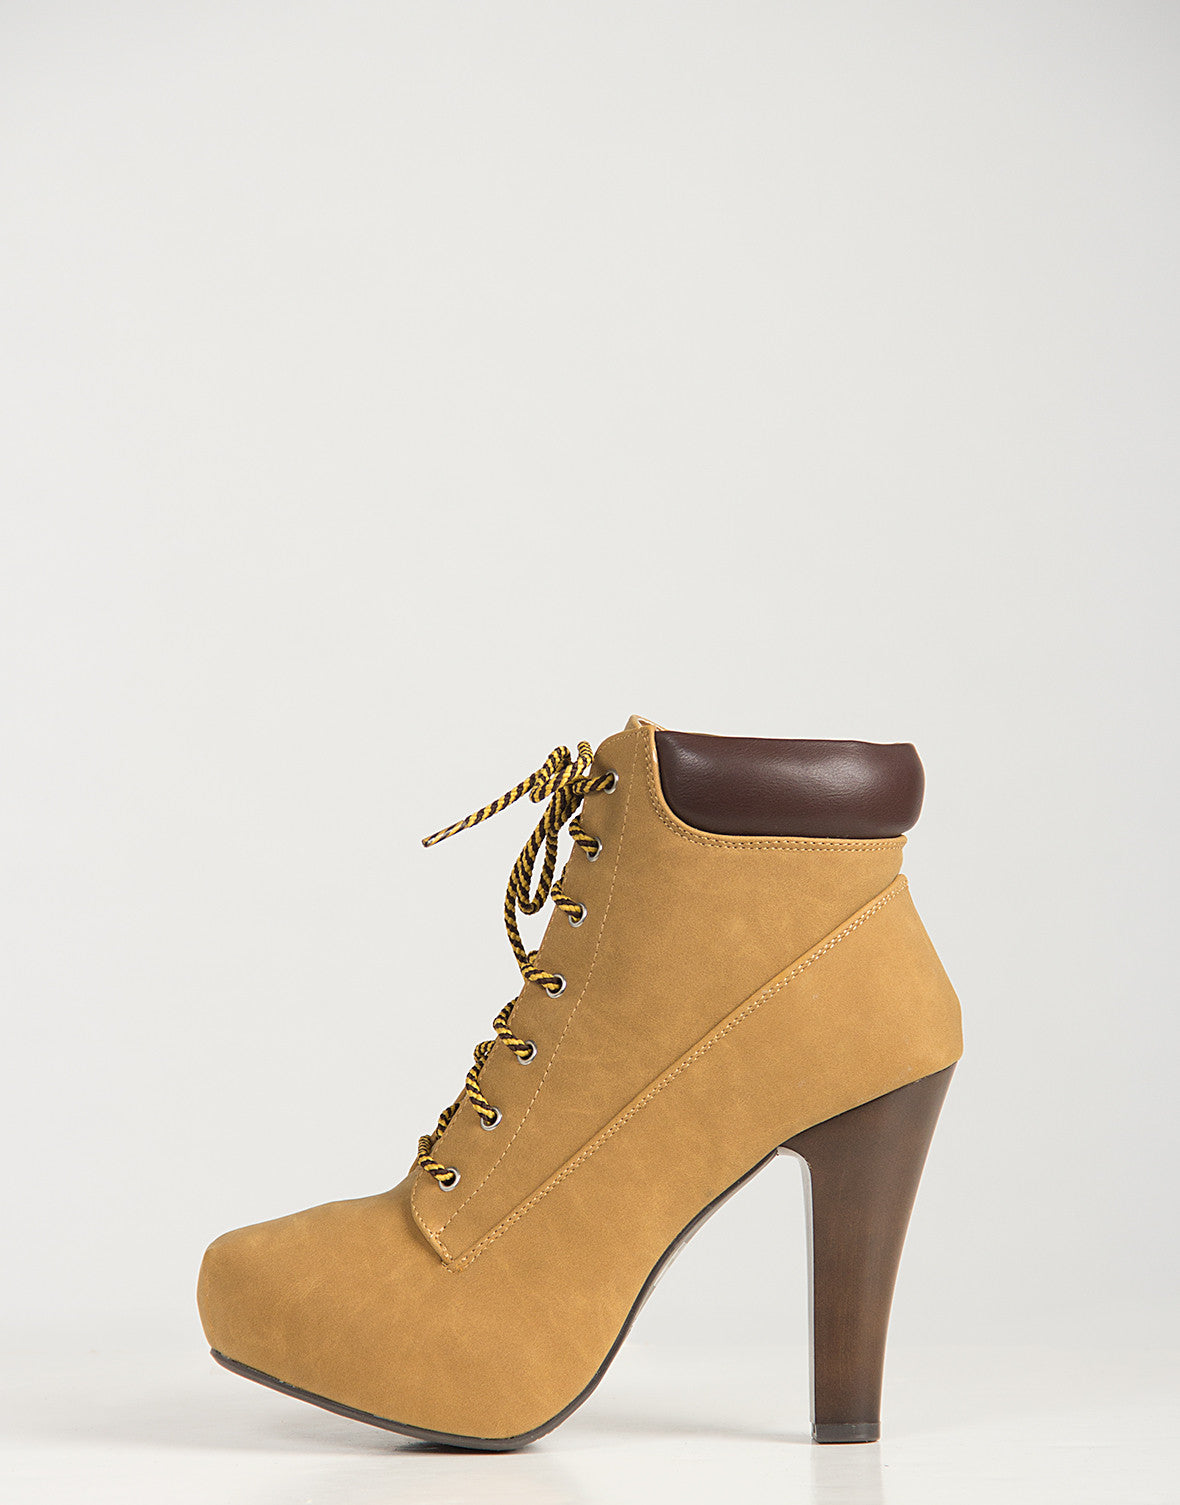 Construction Laced Up Ankle Booties